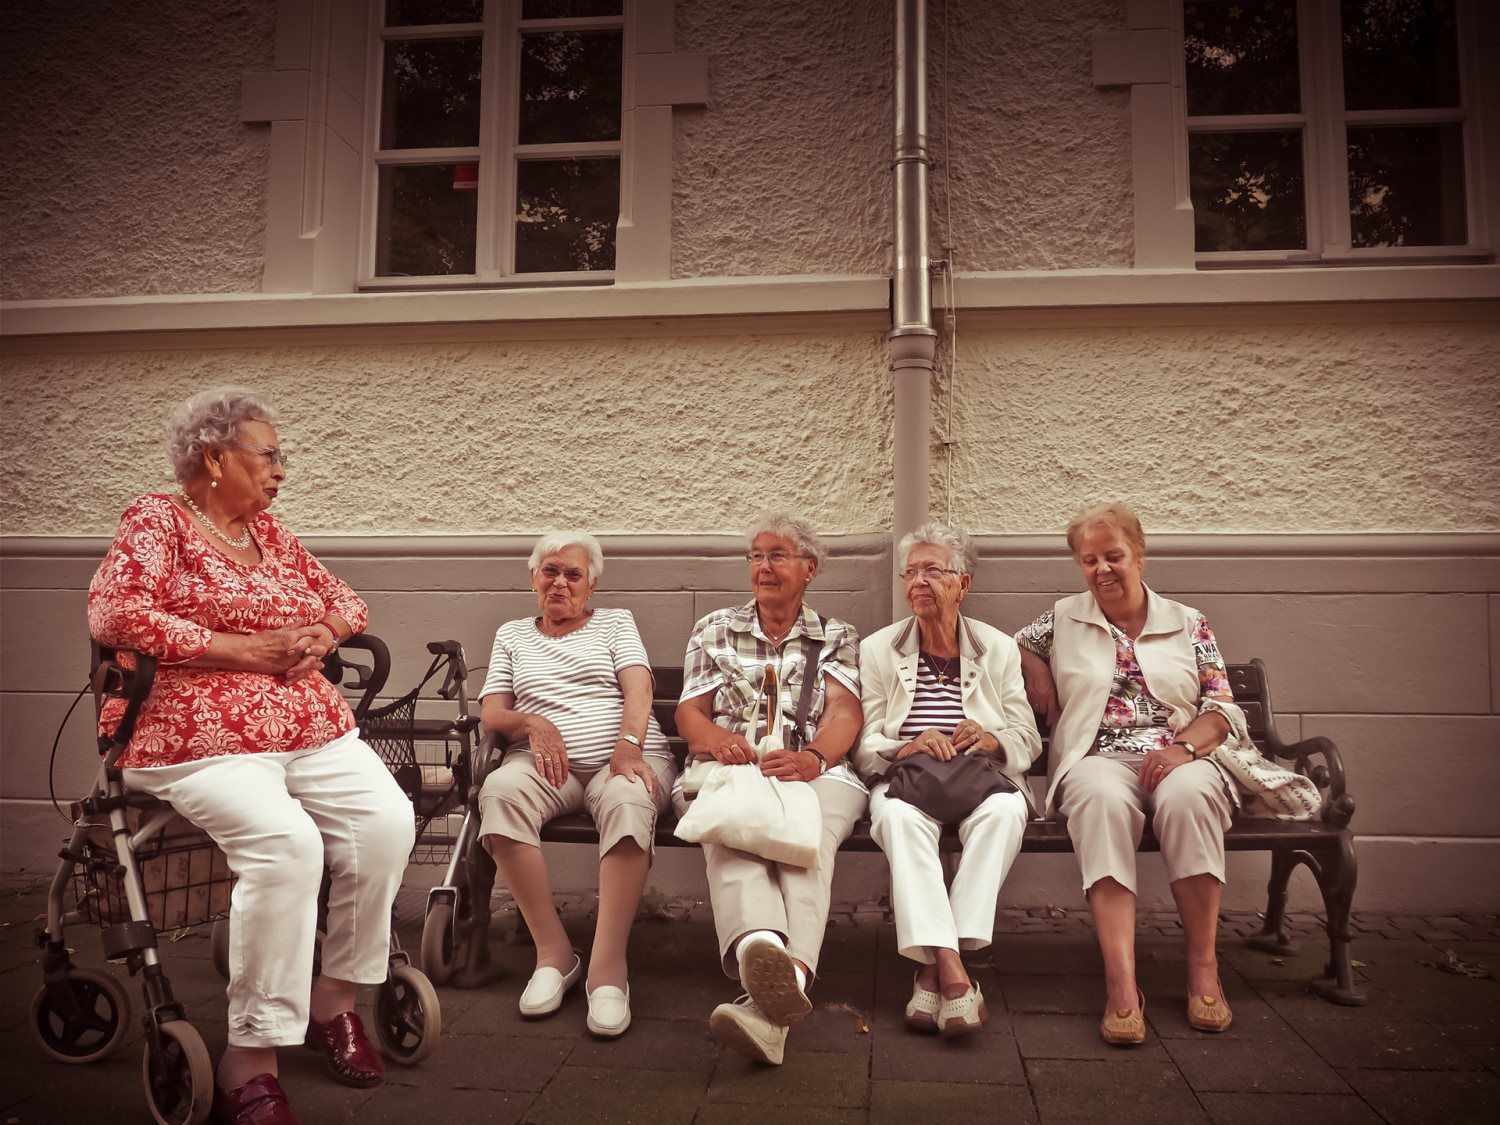 Group of Grandparents